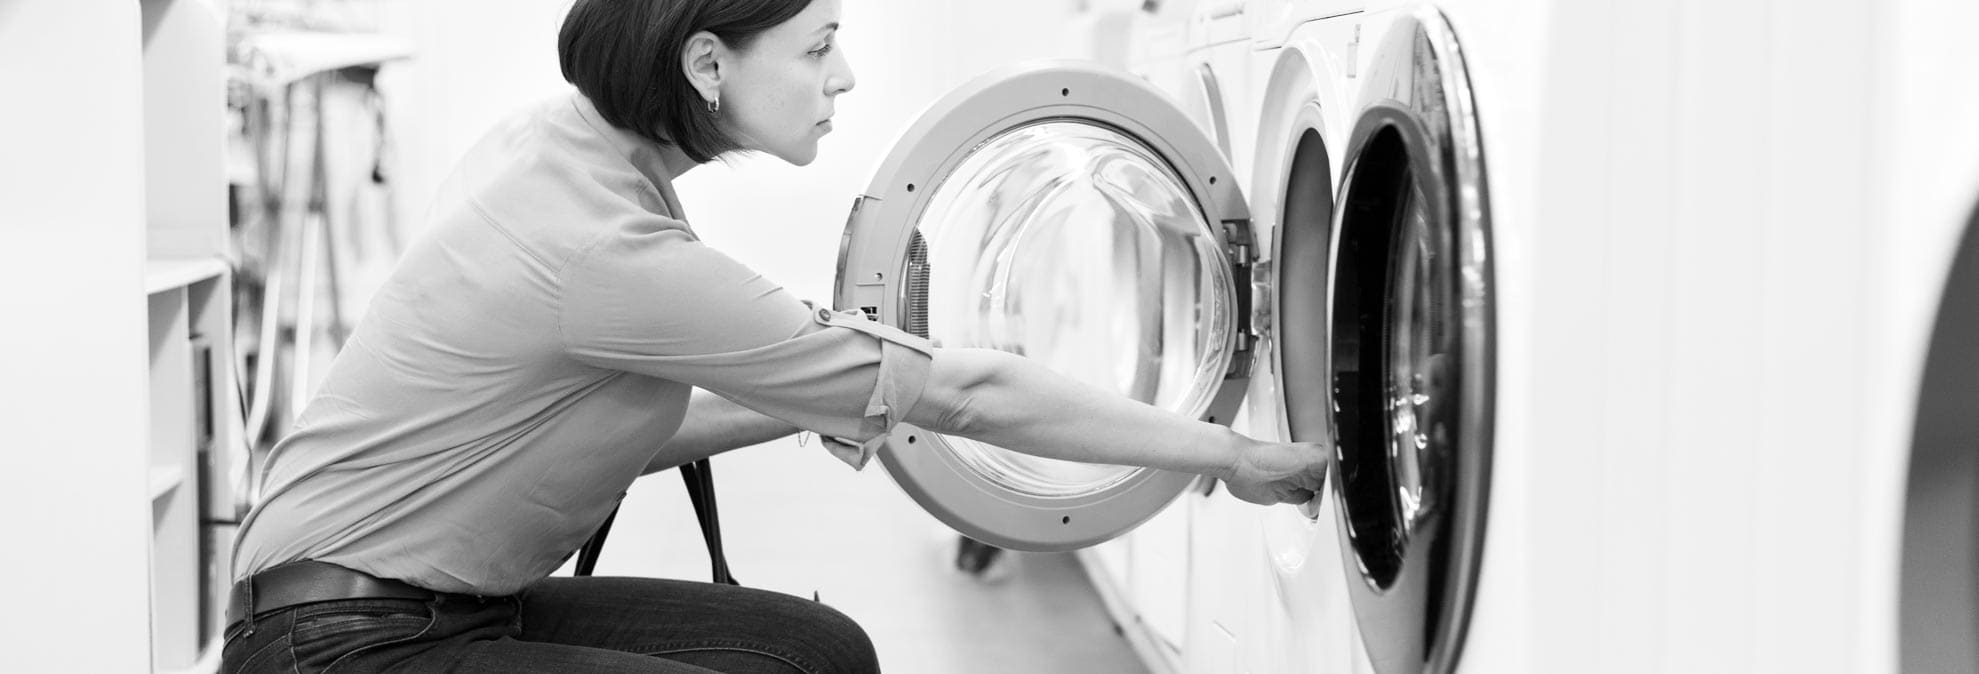 What The New Tariff On Washing Machines Means For Consumers Whirlpool Machine Motor Wiring Diagram Further Maytag Washer Consumer Reports